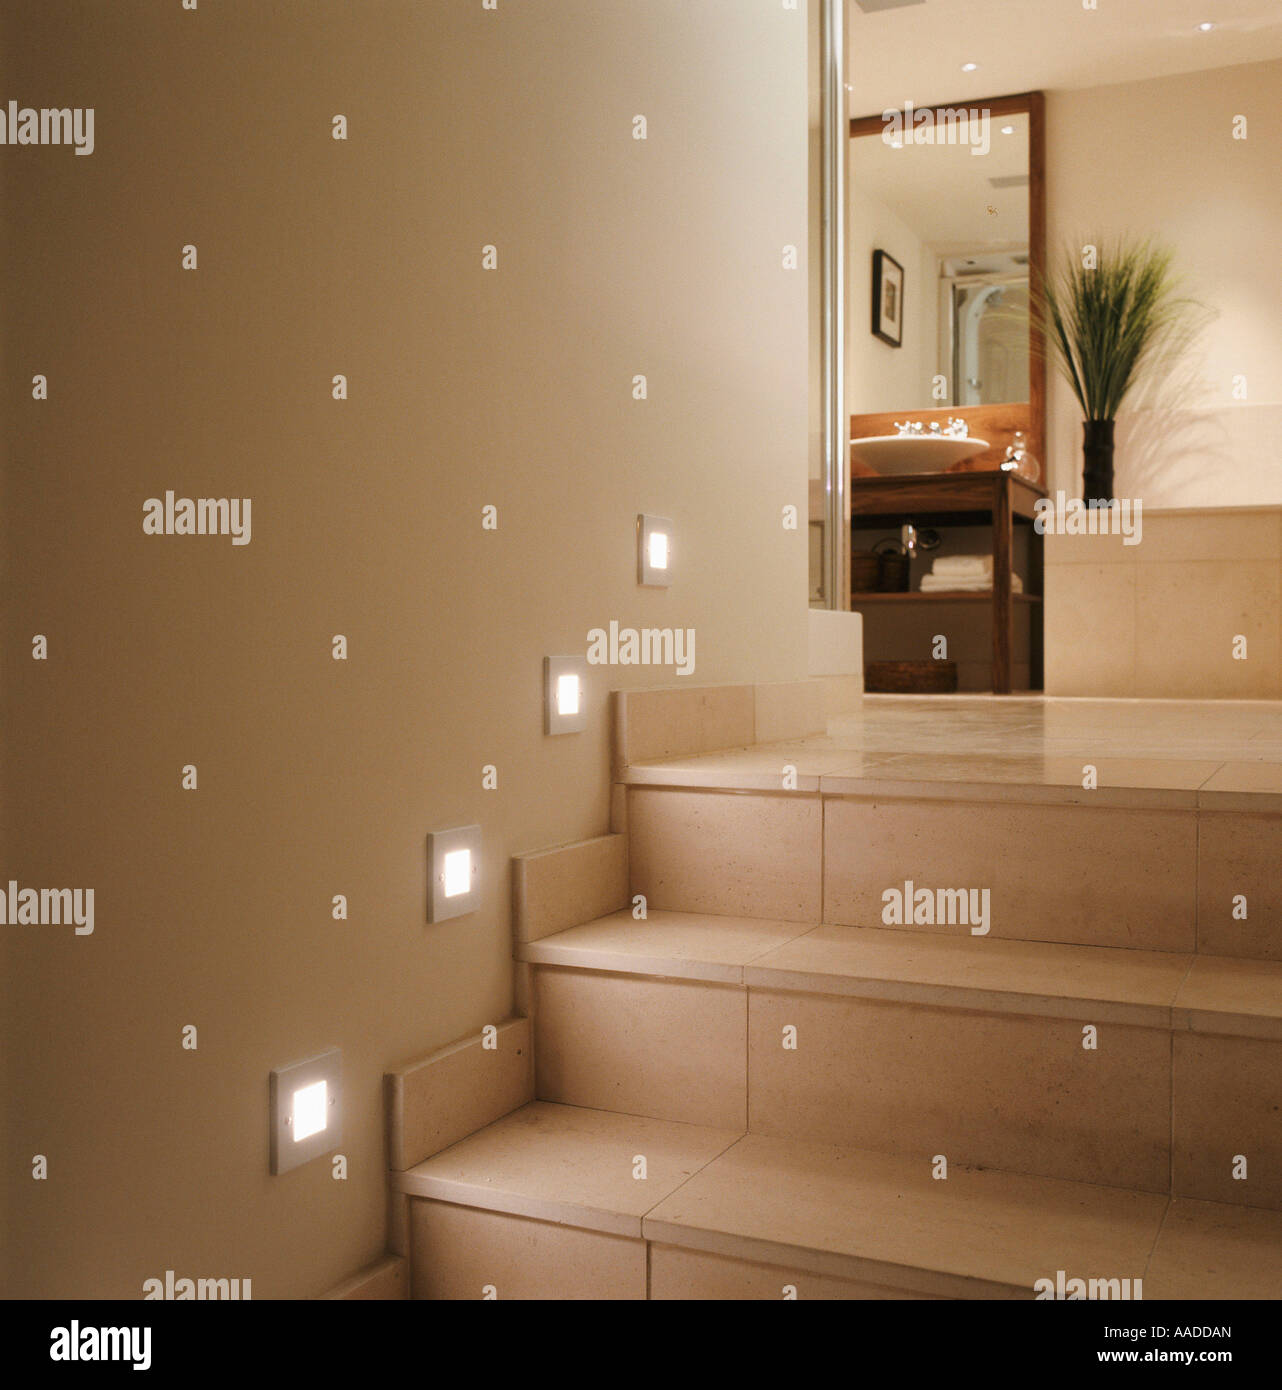 Spot lighting on tiled stairway to bathroom - Stock Image